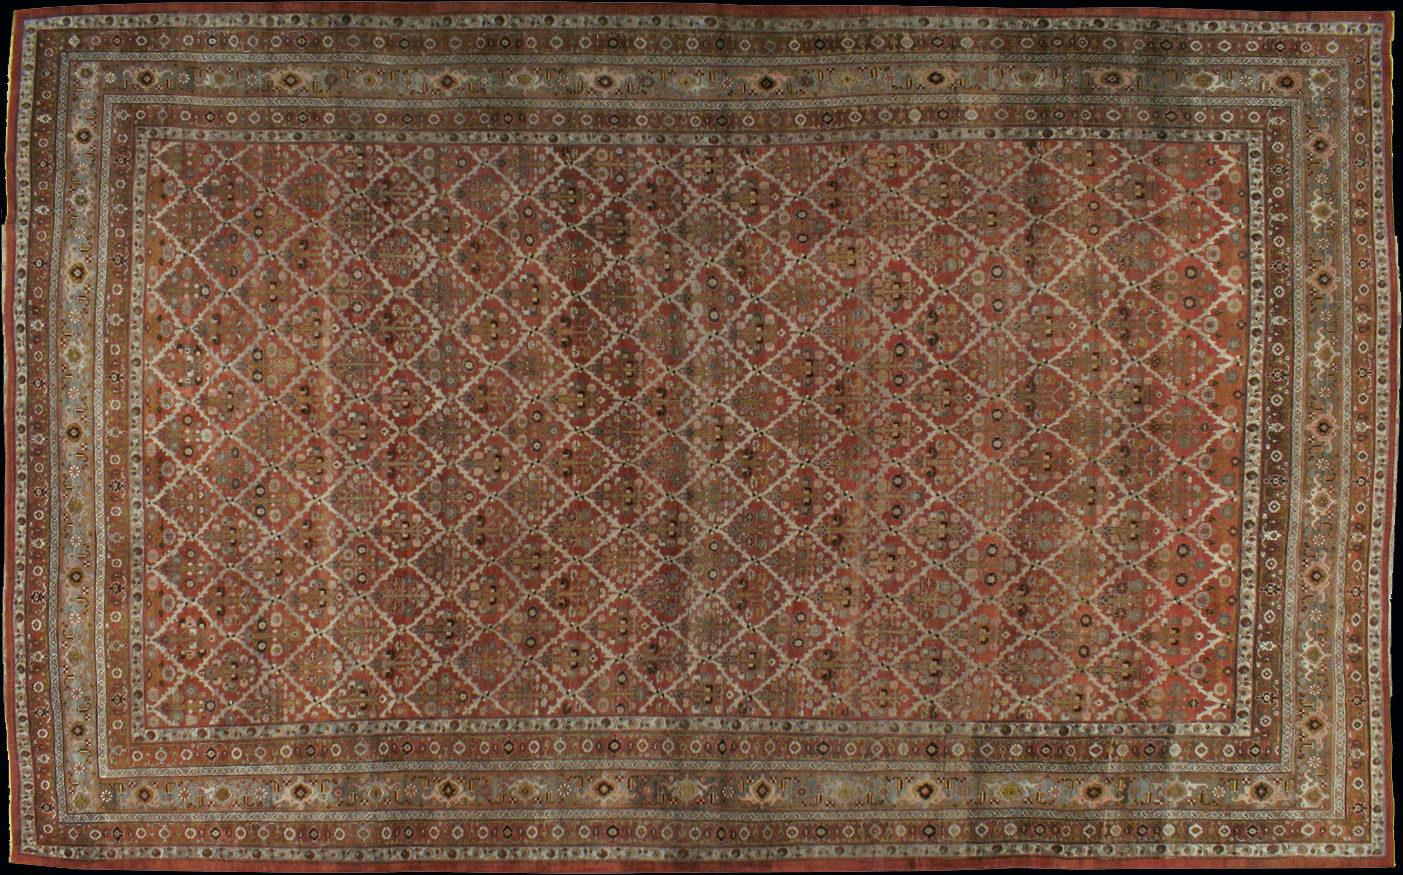 Antique bidjar Carpet - # 50209